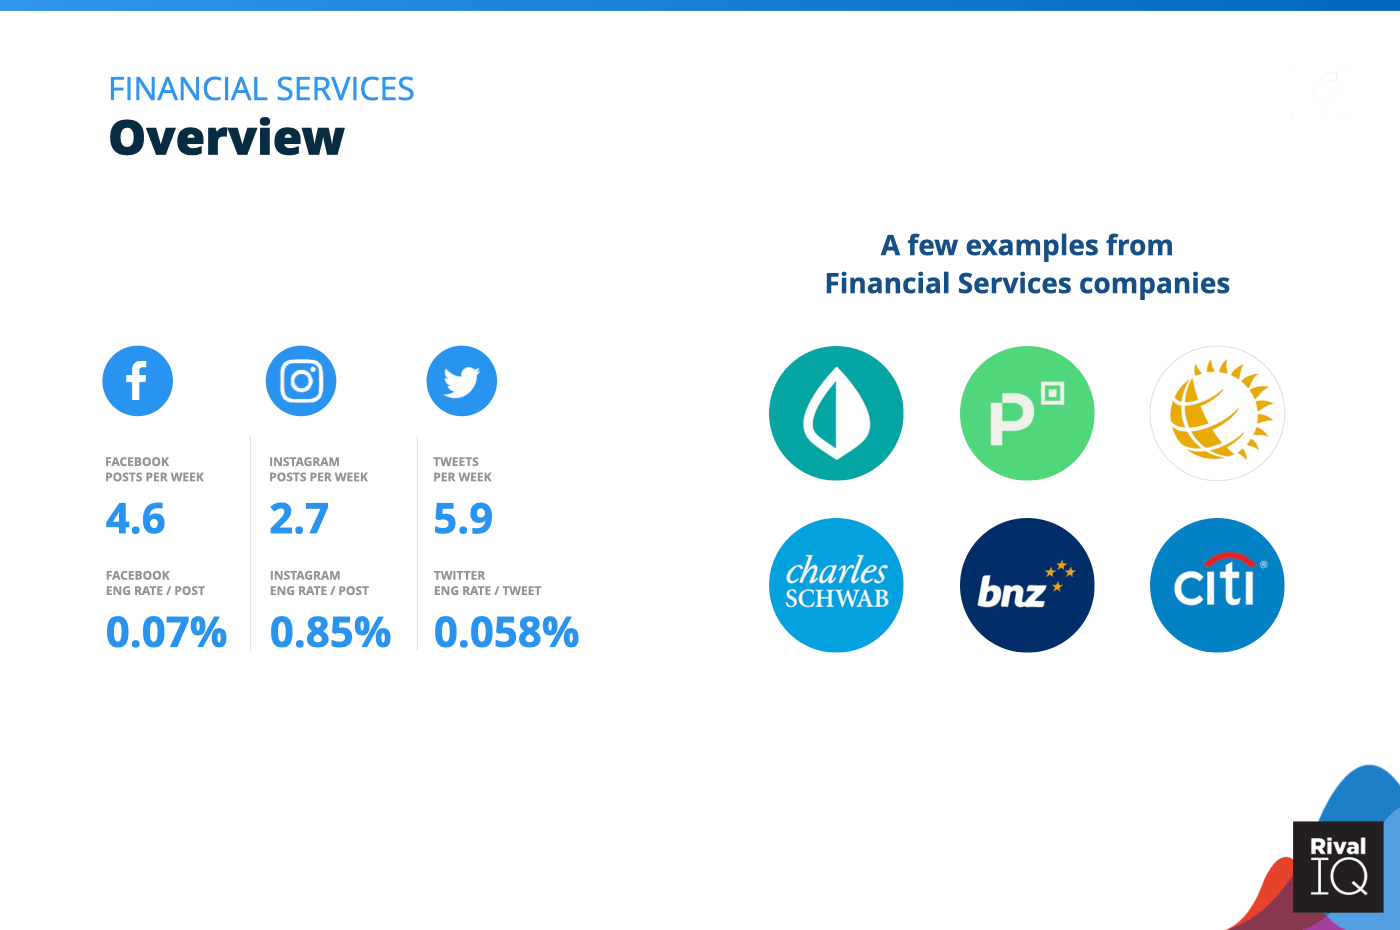 Overview of all benchmarks, Financial Services